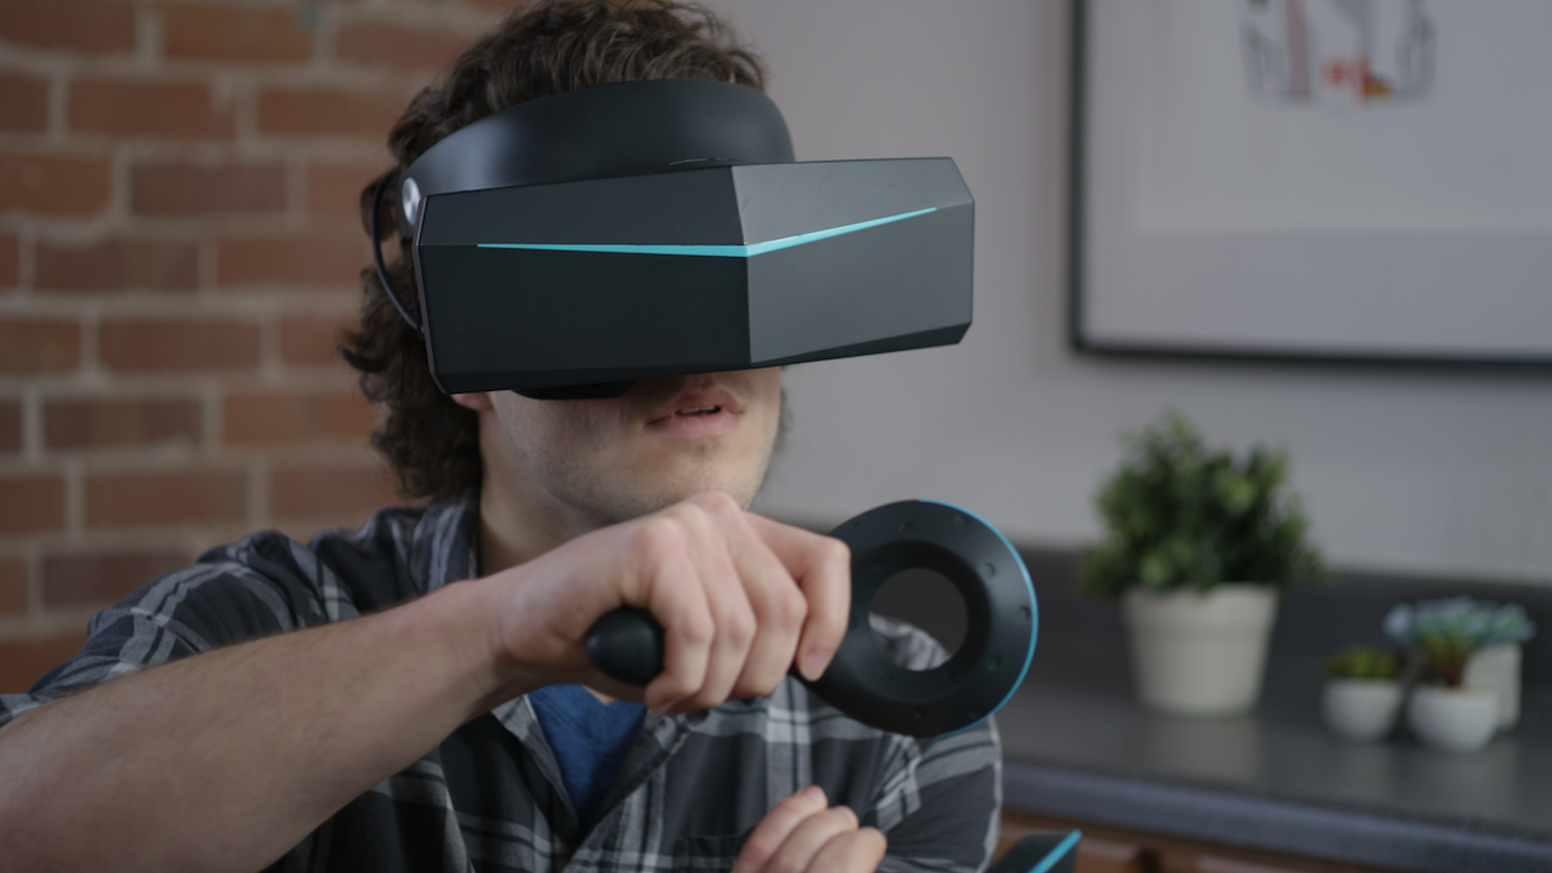 Pimax 8K allows users to experience VR with Peripheral vision while solving the problem of screen door effect and motion sickness